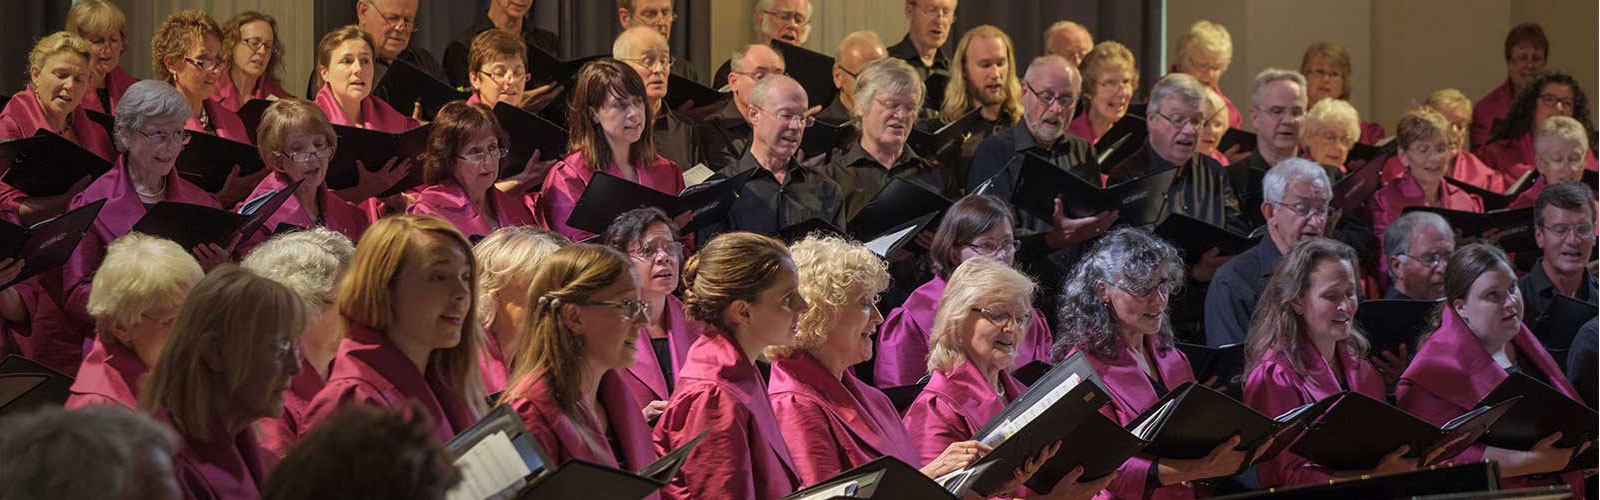 Cheltenham Bach Choir summer concert: The Sound of Musicals